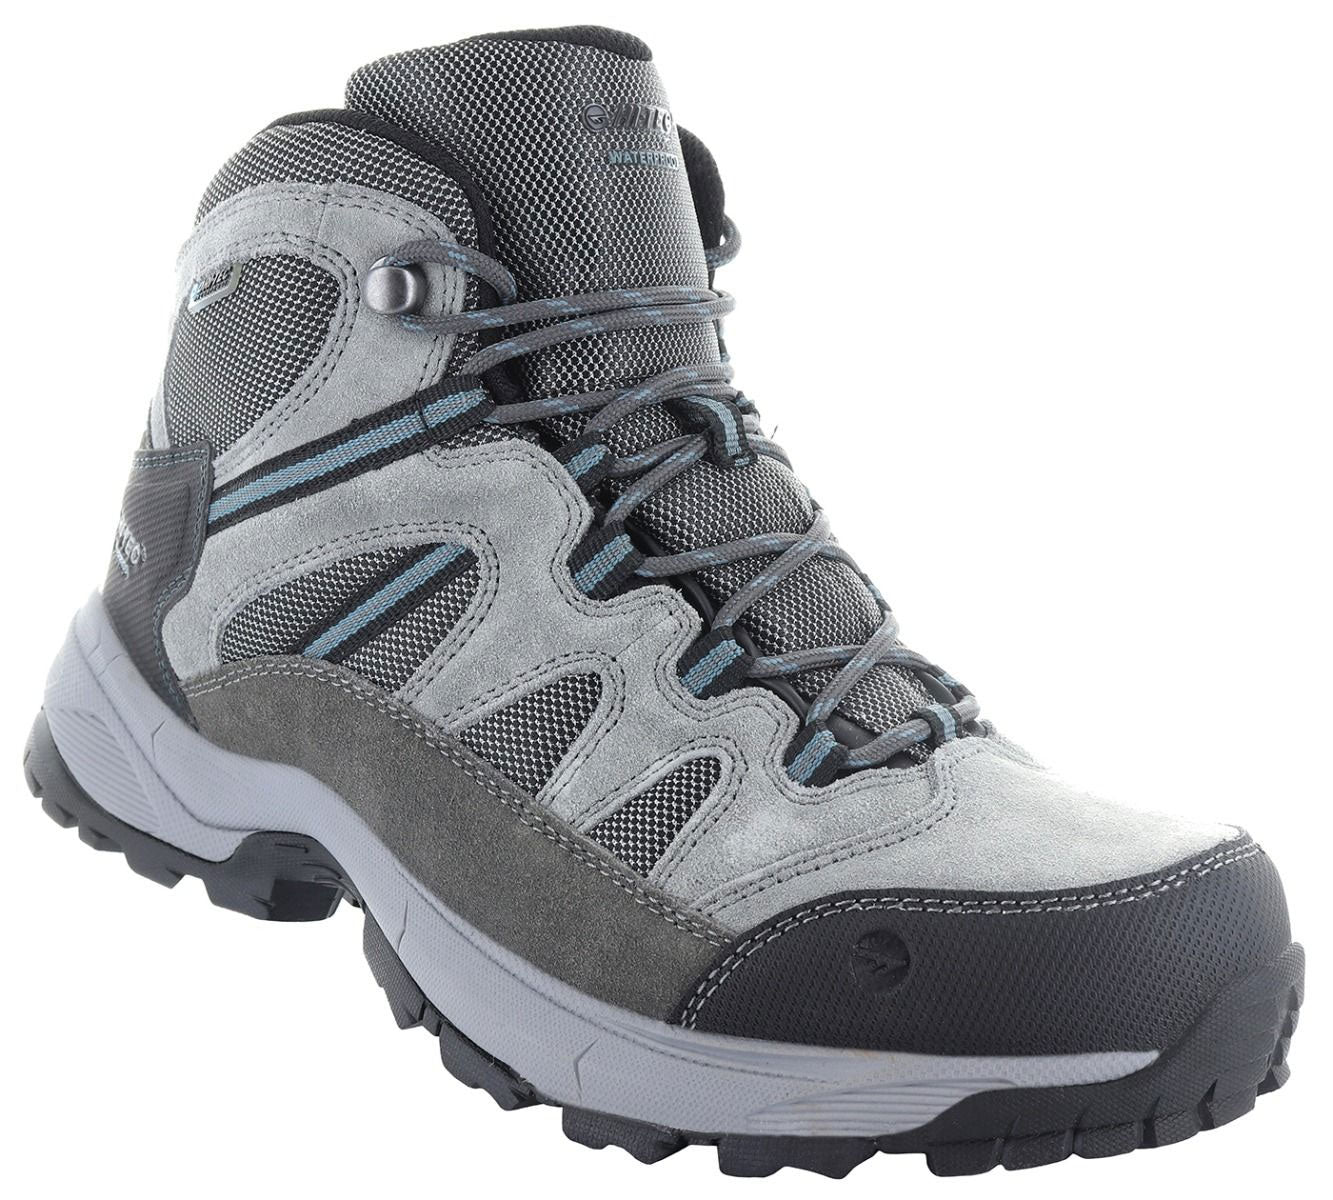 Grey and Blue Hi-Tec Bandera Lite Waterproof Hiking Boots